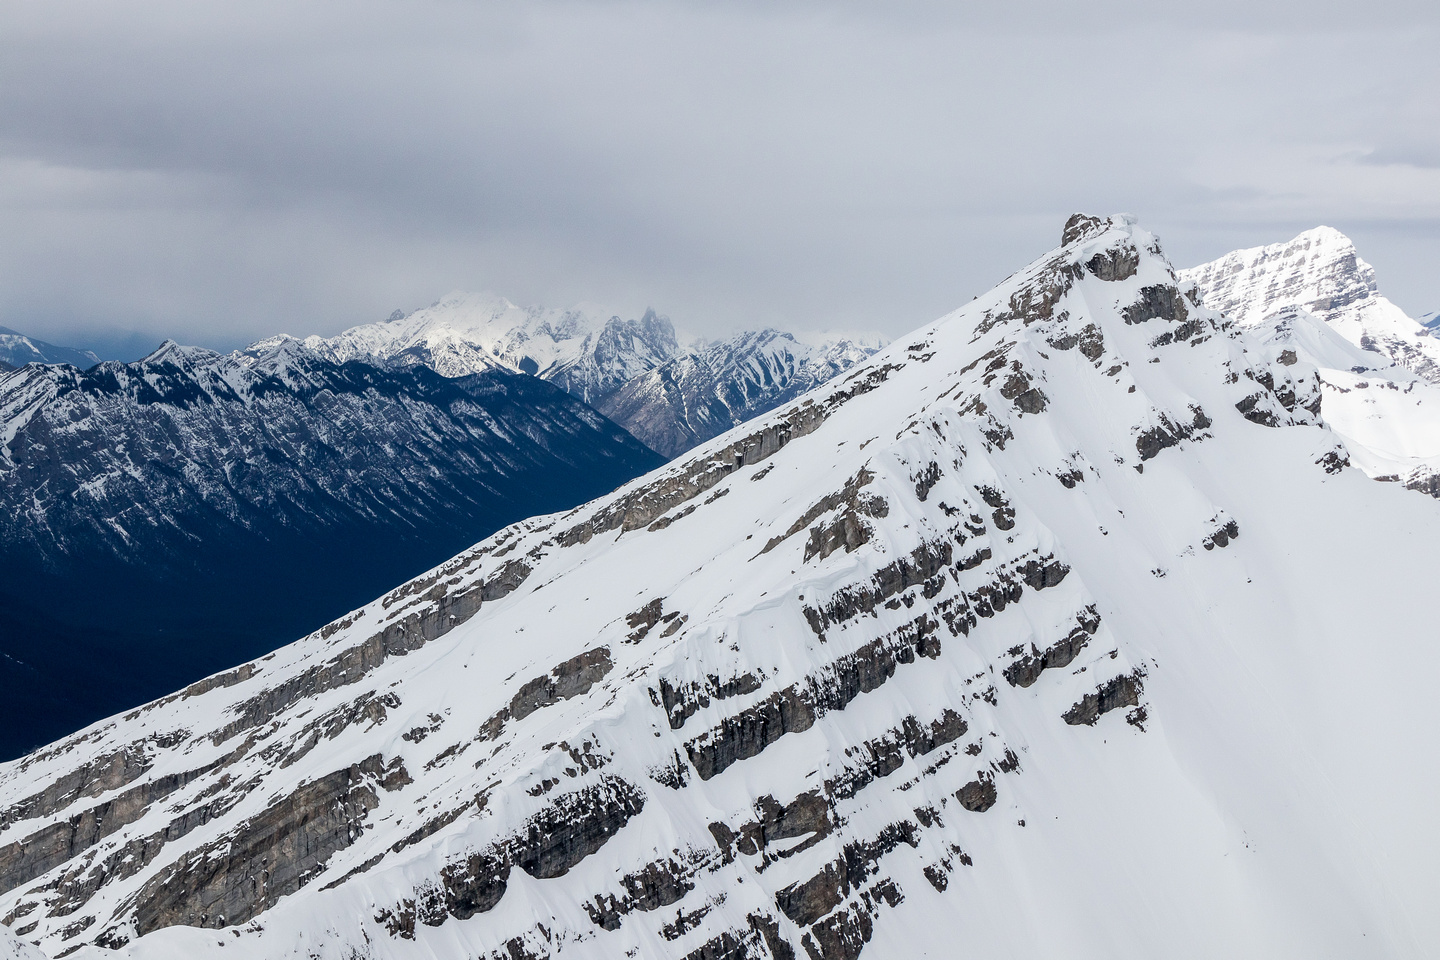 Mount Lawrence Grassi was one of my first winter scrambles. It took me two tries on subsequent days to make the summit!